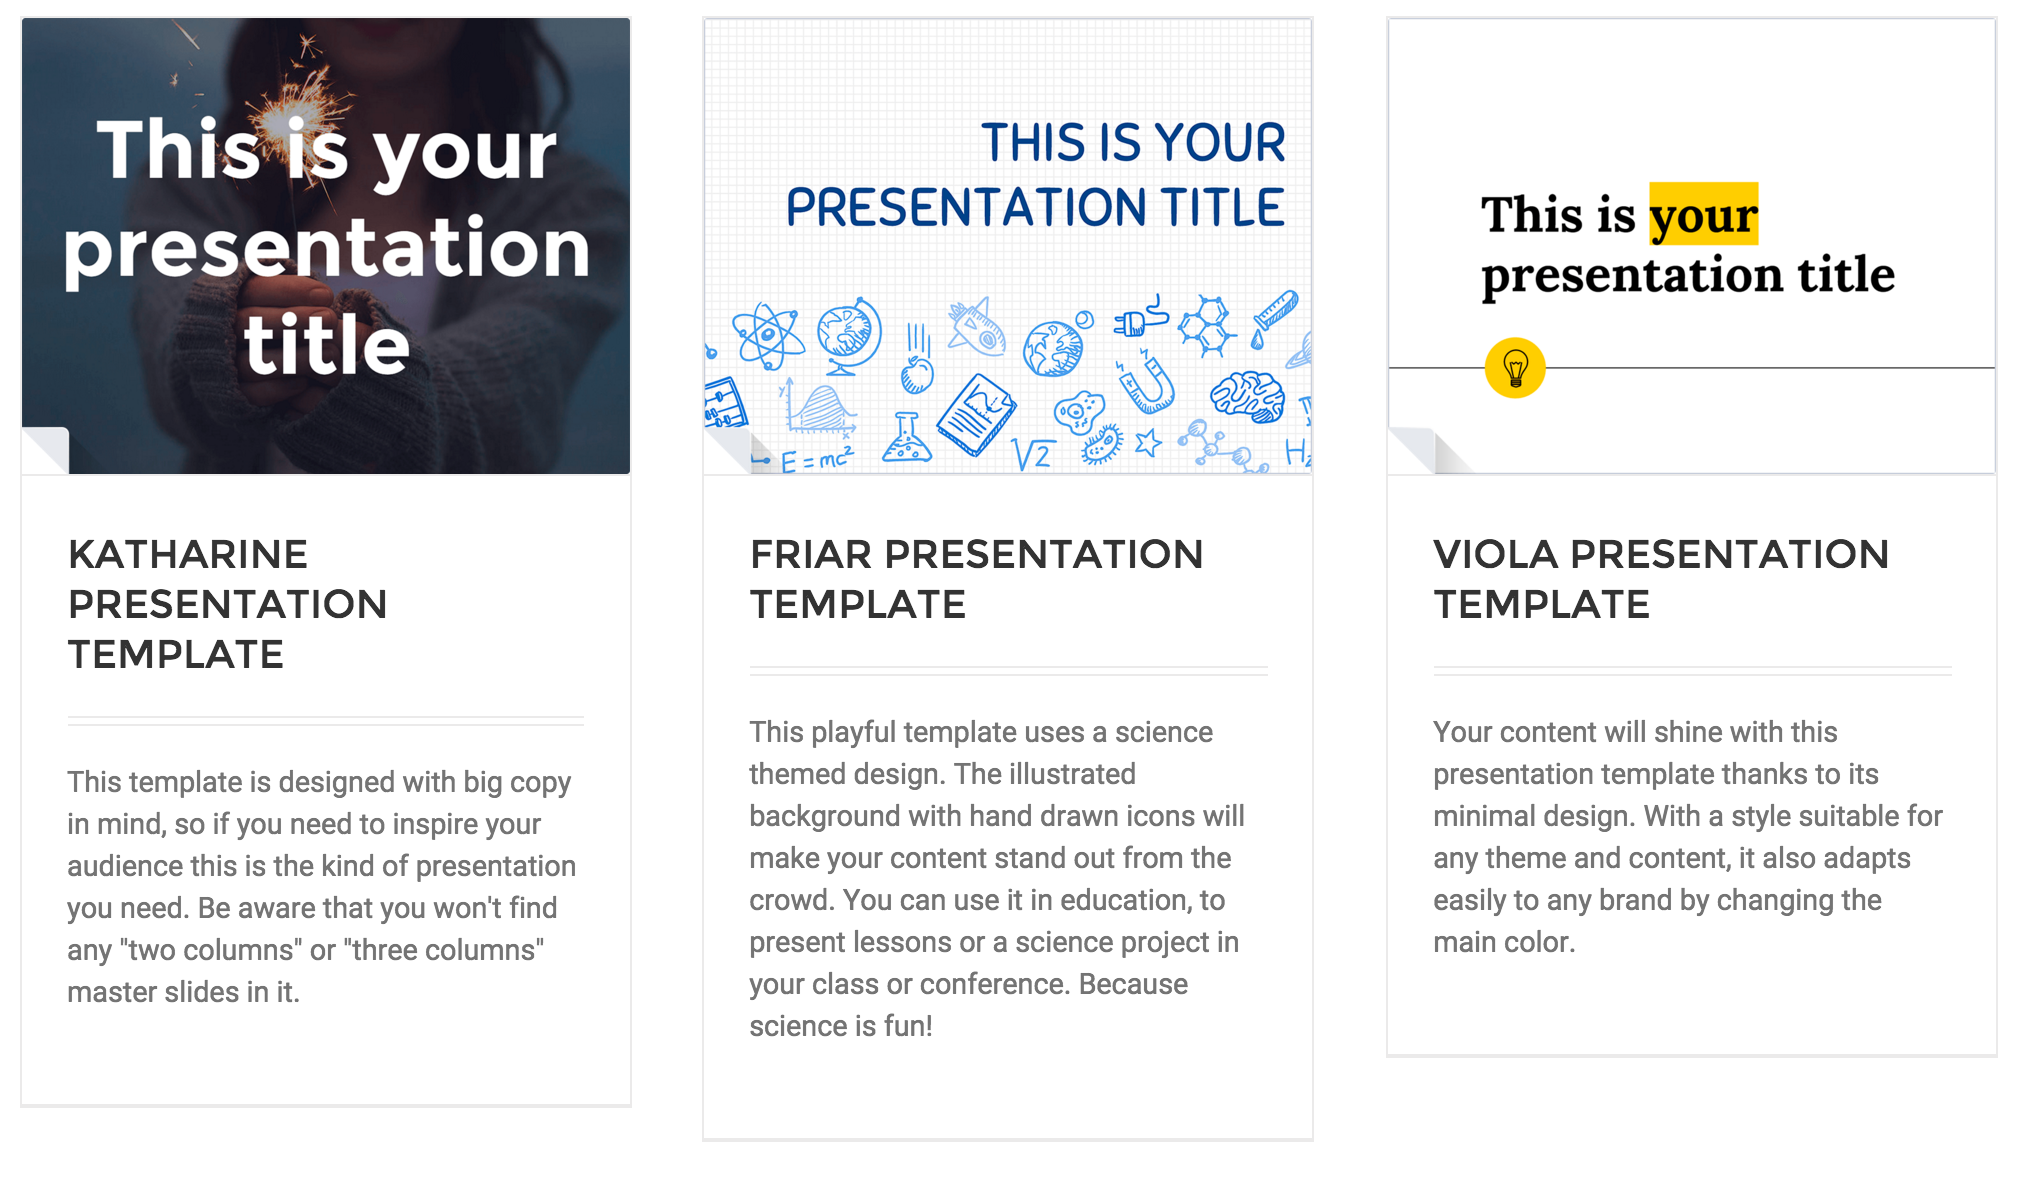 google slides templates - tips and tools from the geier library, Presentation templates